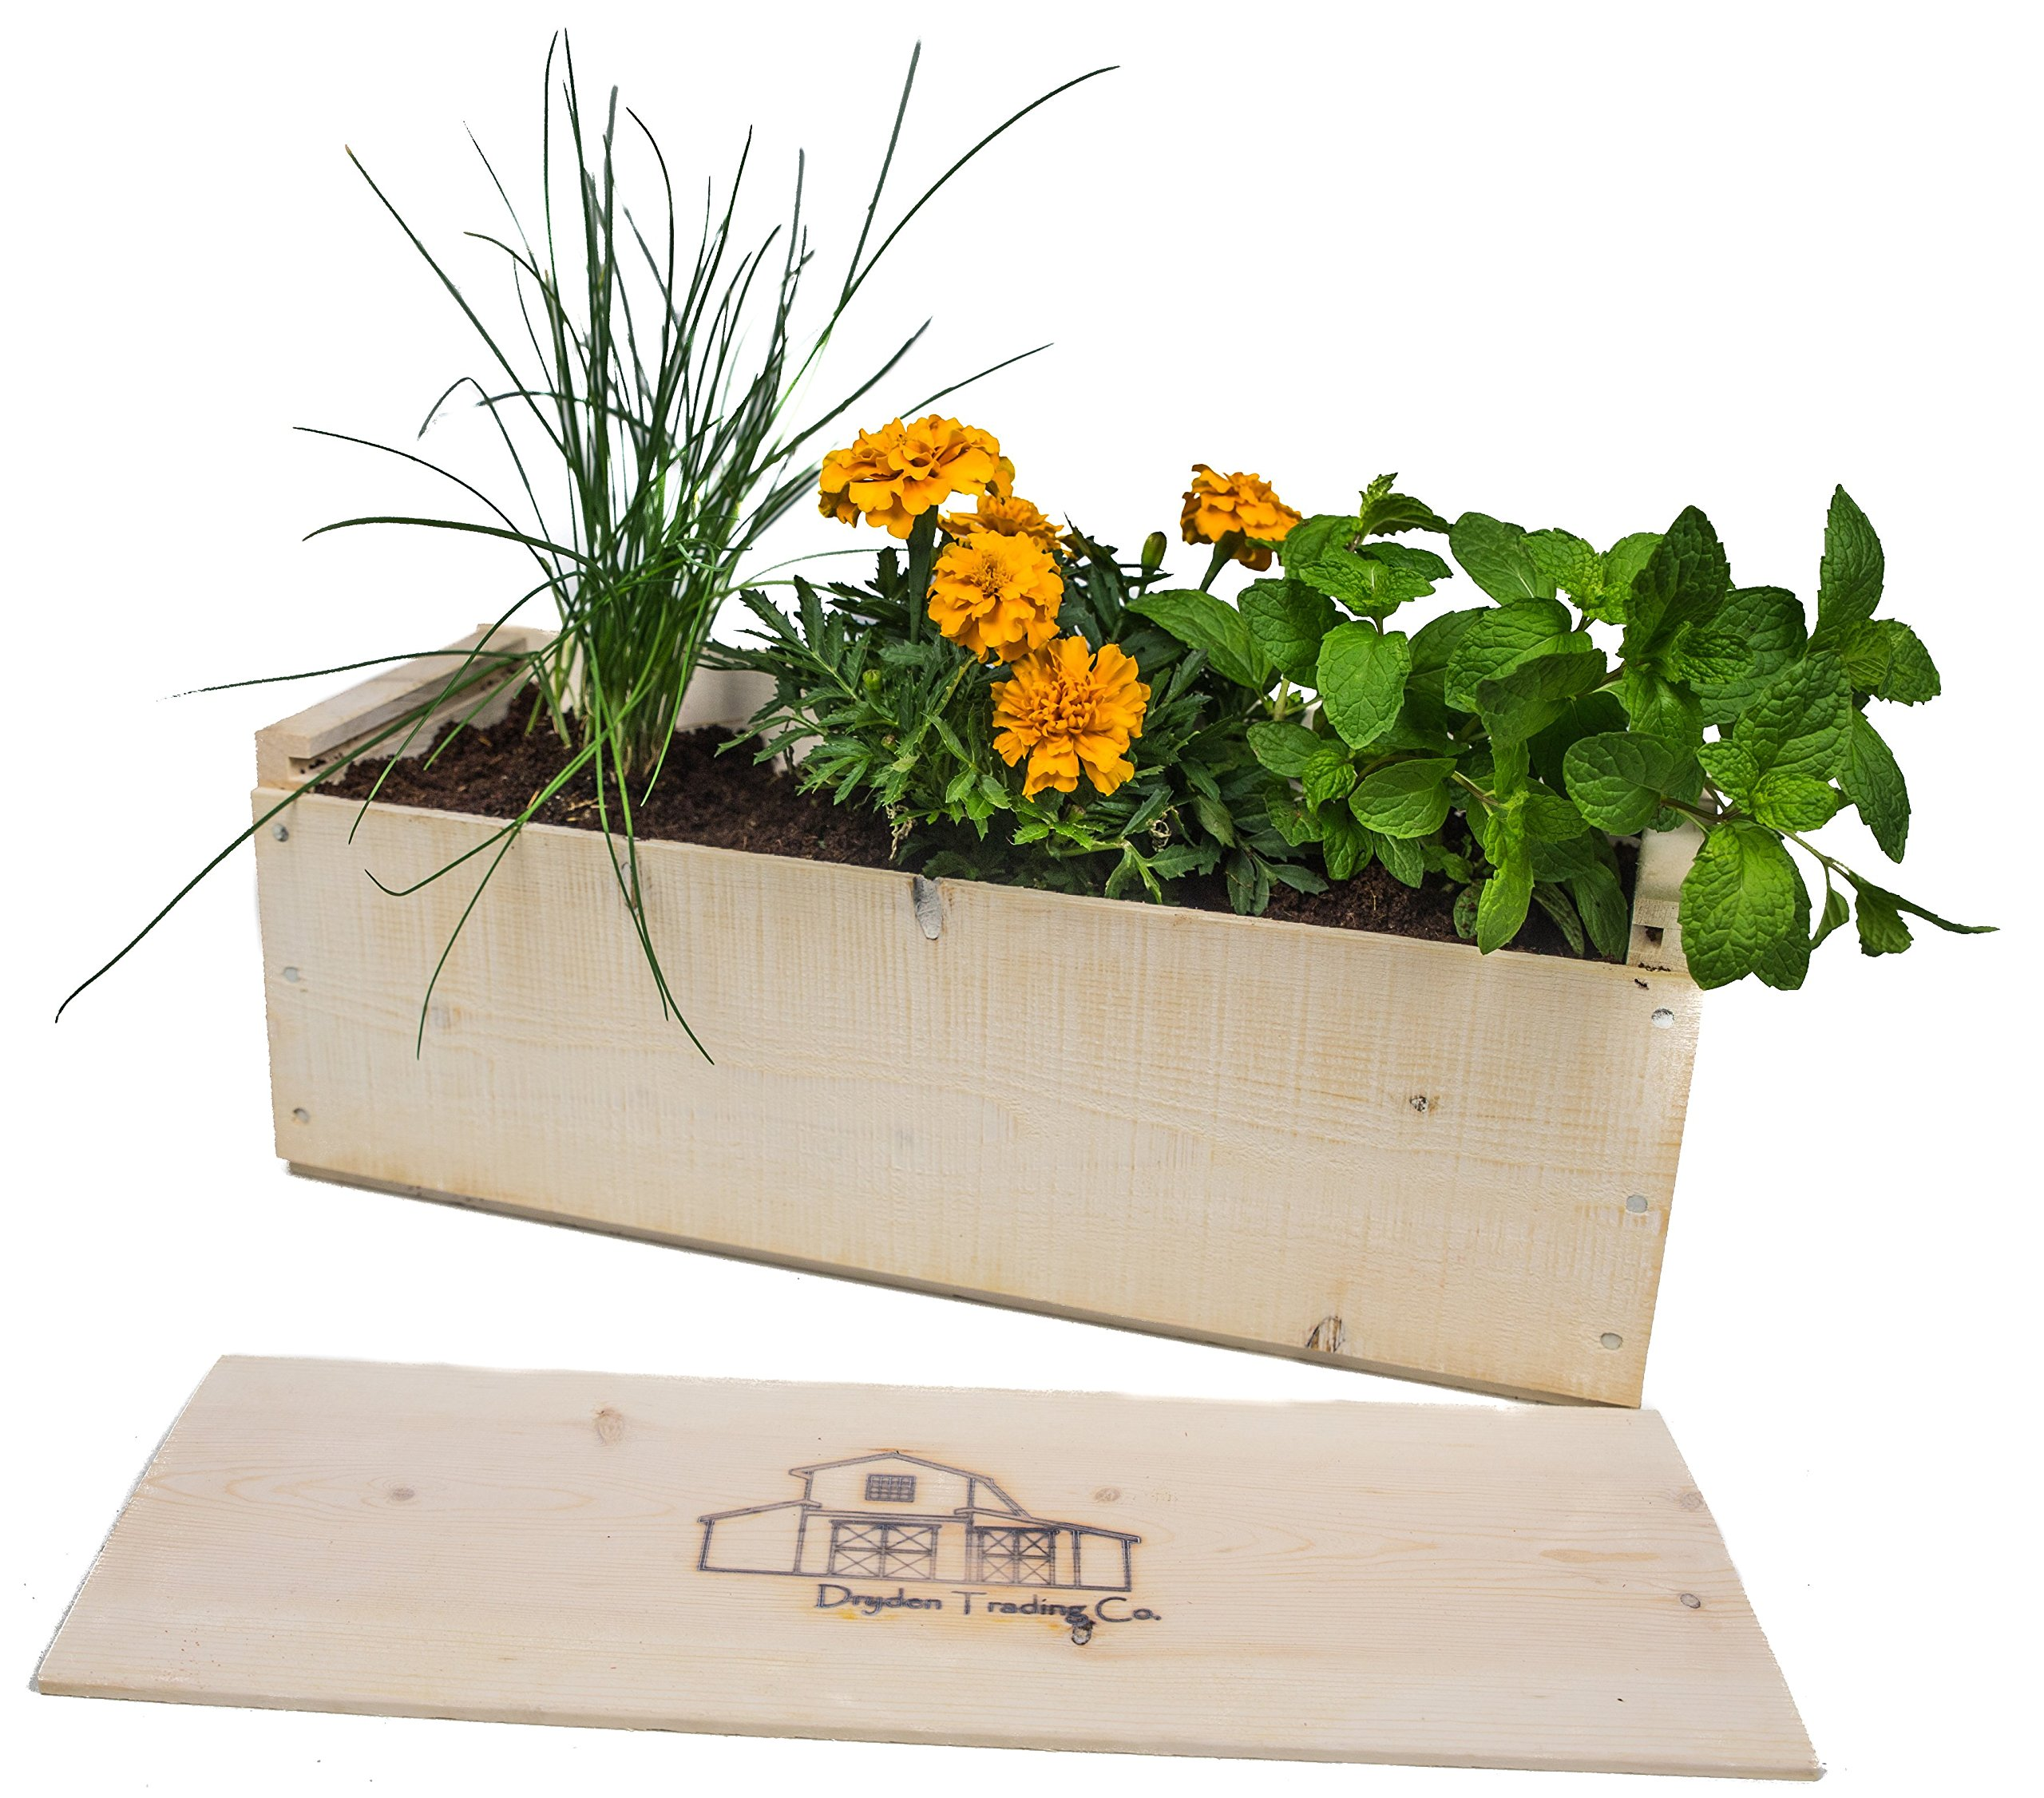 Indoor Herb Garden Planter Box Kit with Basil, Cilantro, Oregano, Parsley, Dill Seeds and Soil - White